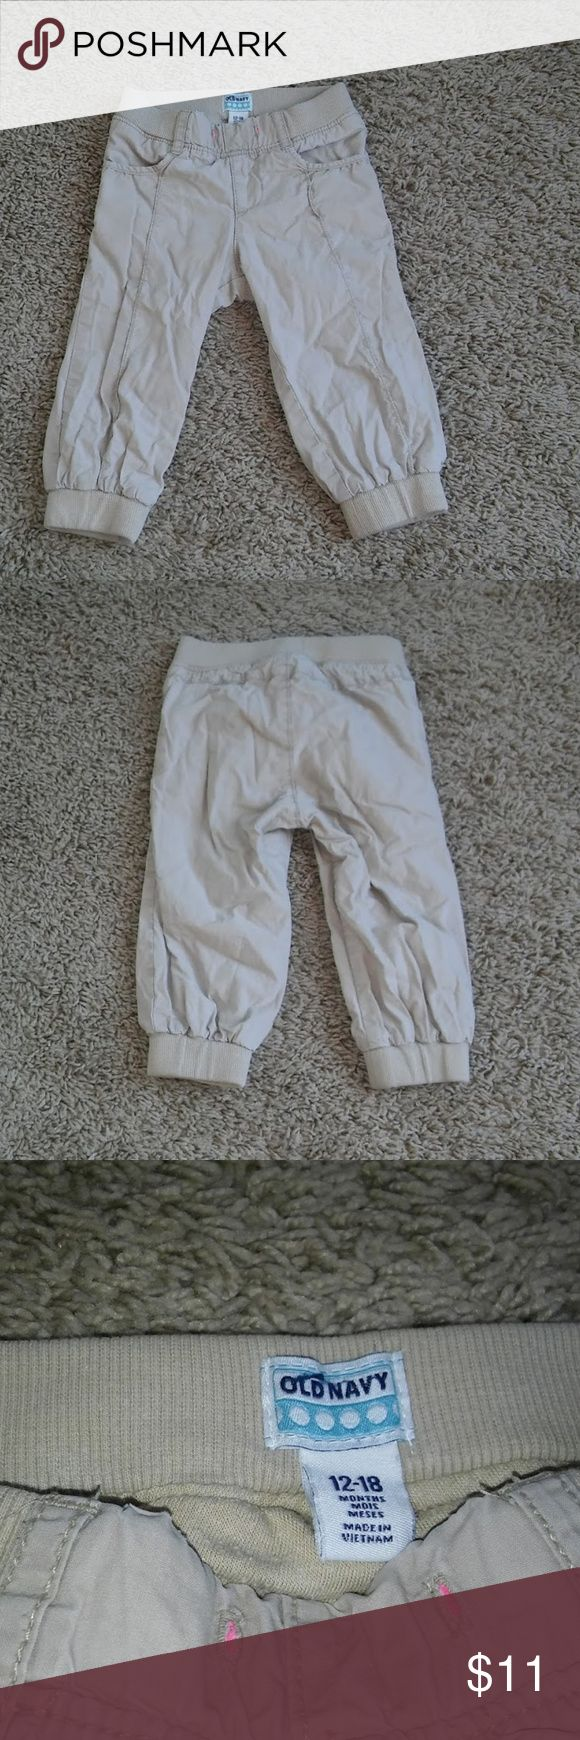 Old Navy Jersey Lined Khaki Jogger Pants Old Navy girls size 12-18 months khaki jogger style pants with jersey knit lining. Cute pants in great condition! Will go with everything and are lined for comfort. Check out my other listings and bundle to save! All reasonable offers considered- no trades. Old Navy Bottoms Casual